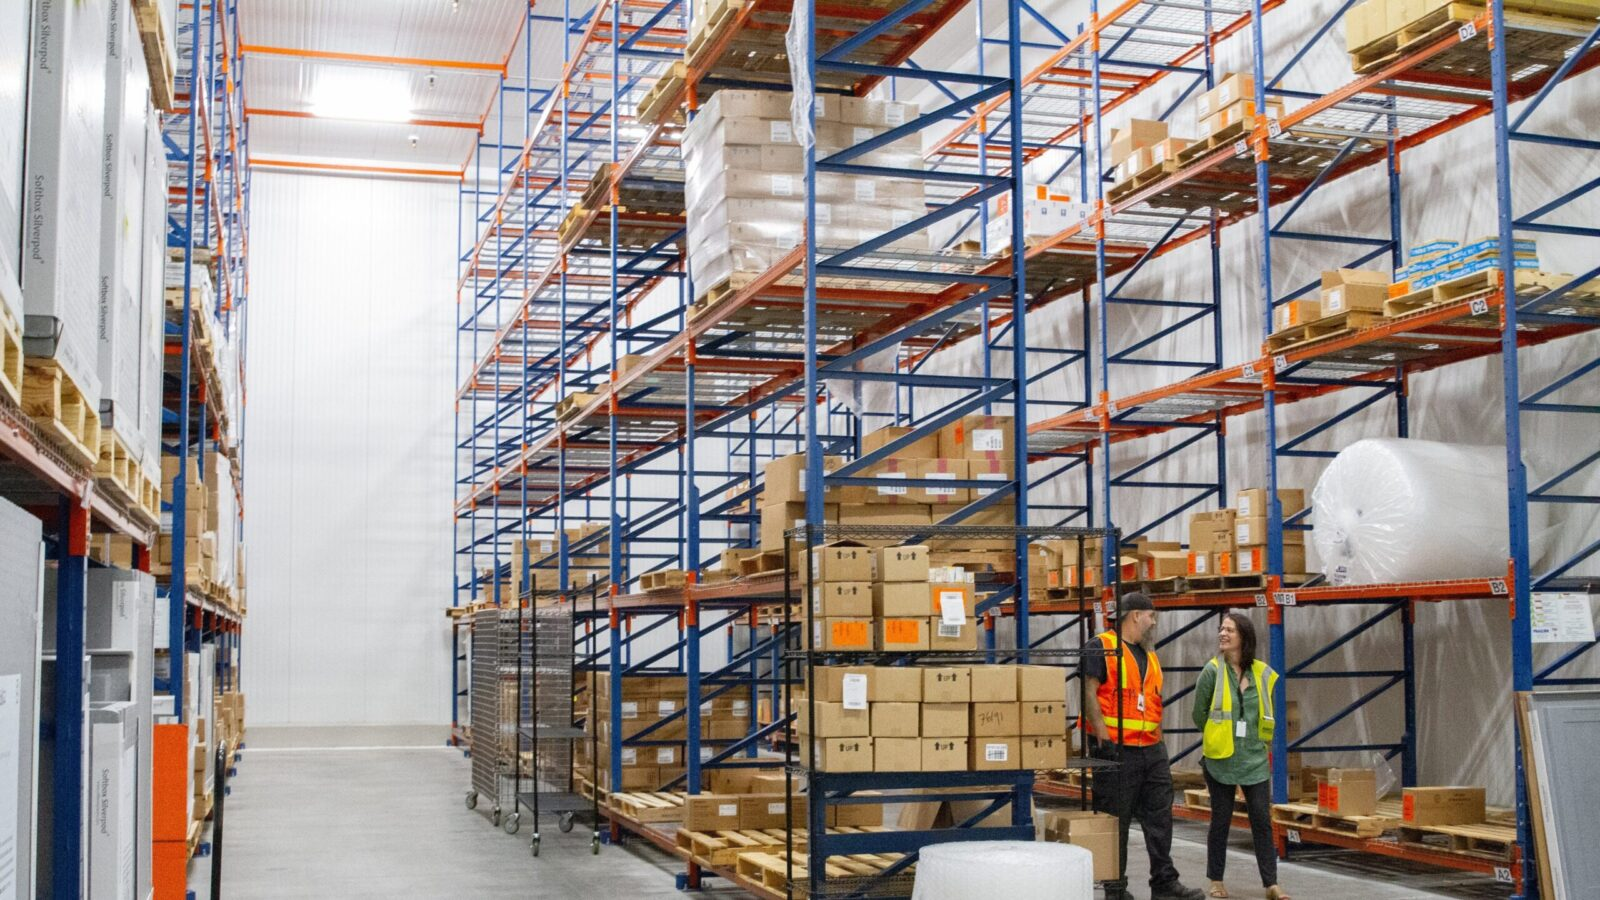 Direct Relief's California headquarters features a 155,000-square-foot pharmaceutical warehouse, the largest in the U.S. run by a charity, and includes validated cold-storage capacity, pictured here in 2019, for vaccines and other temperature sensitive medications.  (Lara Cooper/Direct Relief)